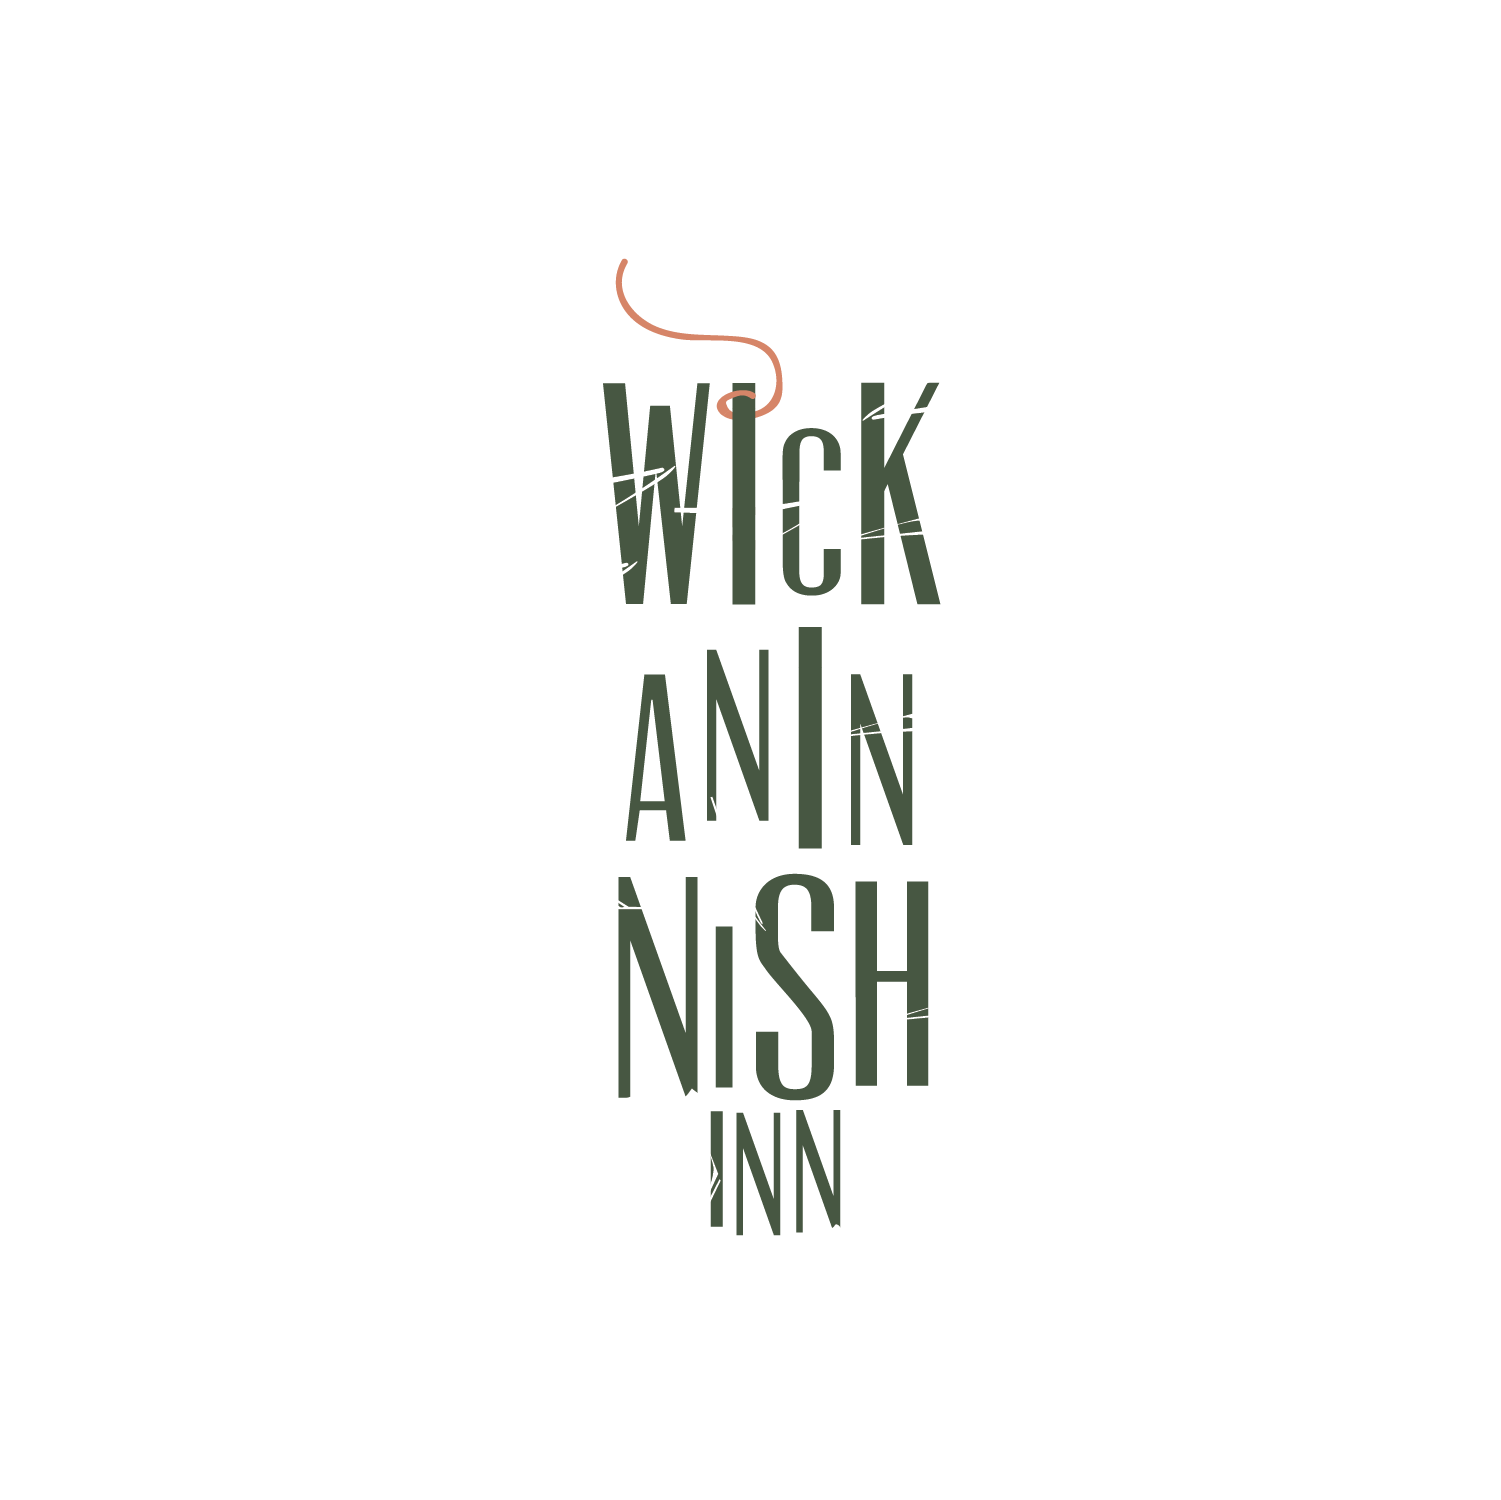 Logo redesign for rustic yet luxury hotel.